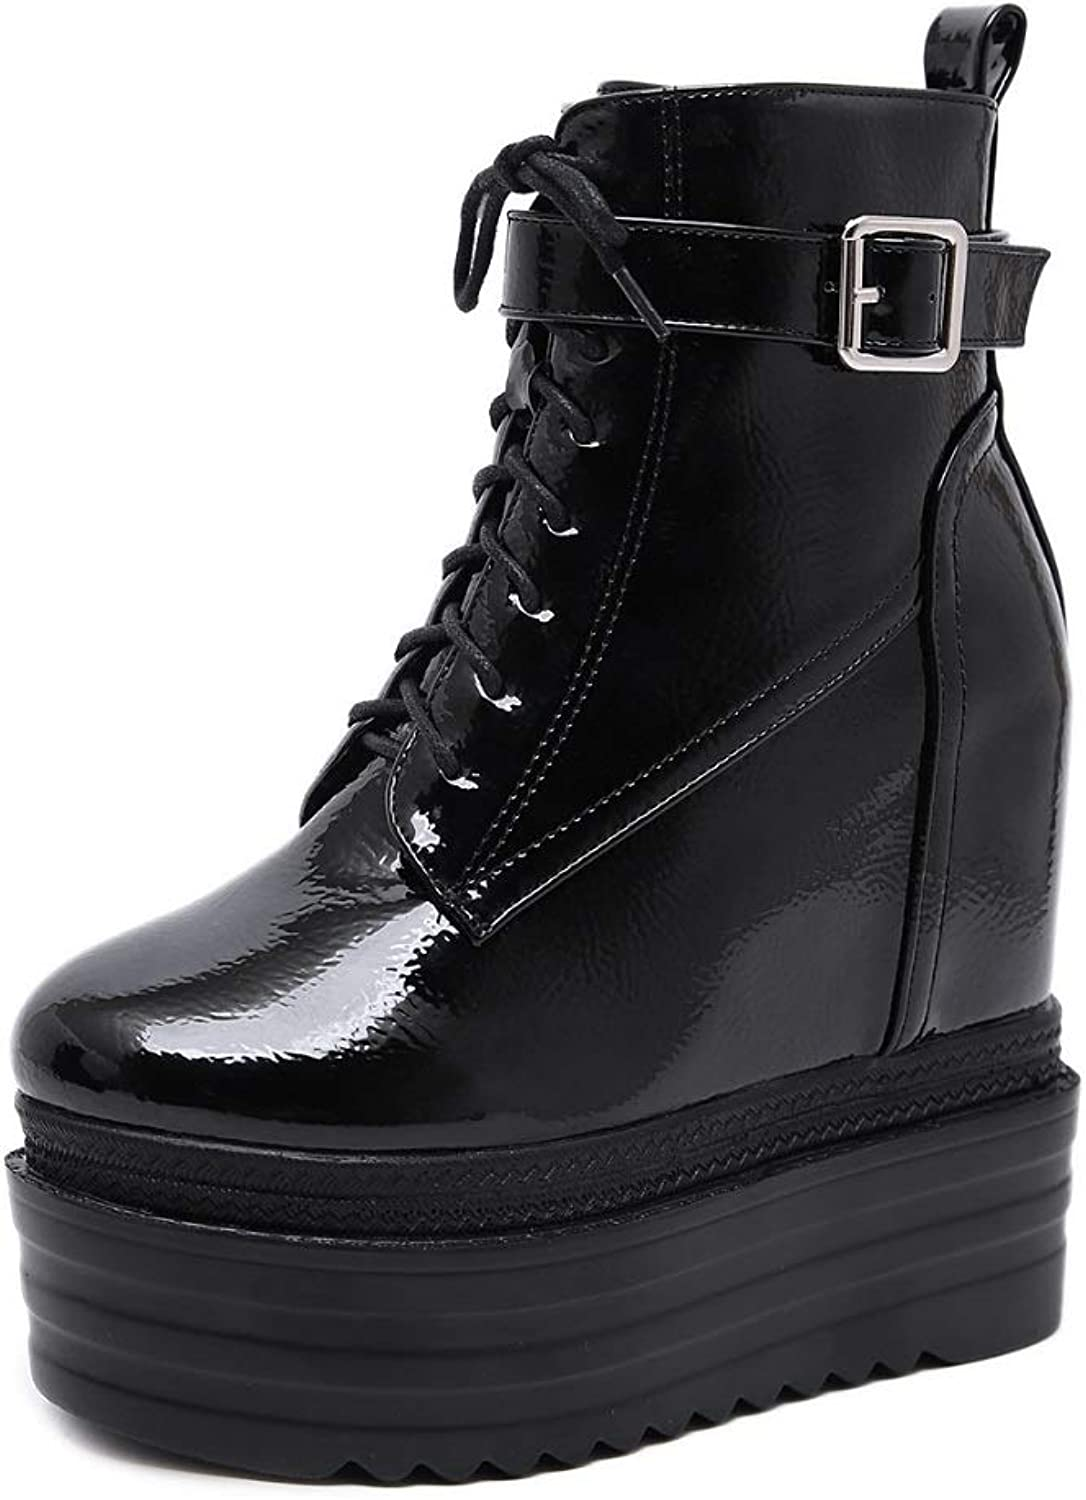 Women Ladies Ankle Winter Boots Platform Wedge Boots Hidden 13CM Trainers Boots High Heels Black Warm Fashion Leisure Booties Size Bright Finish PU